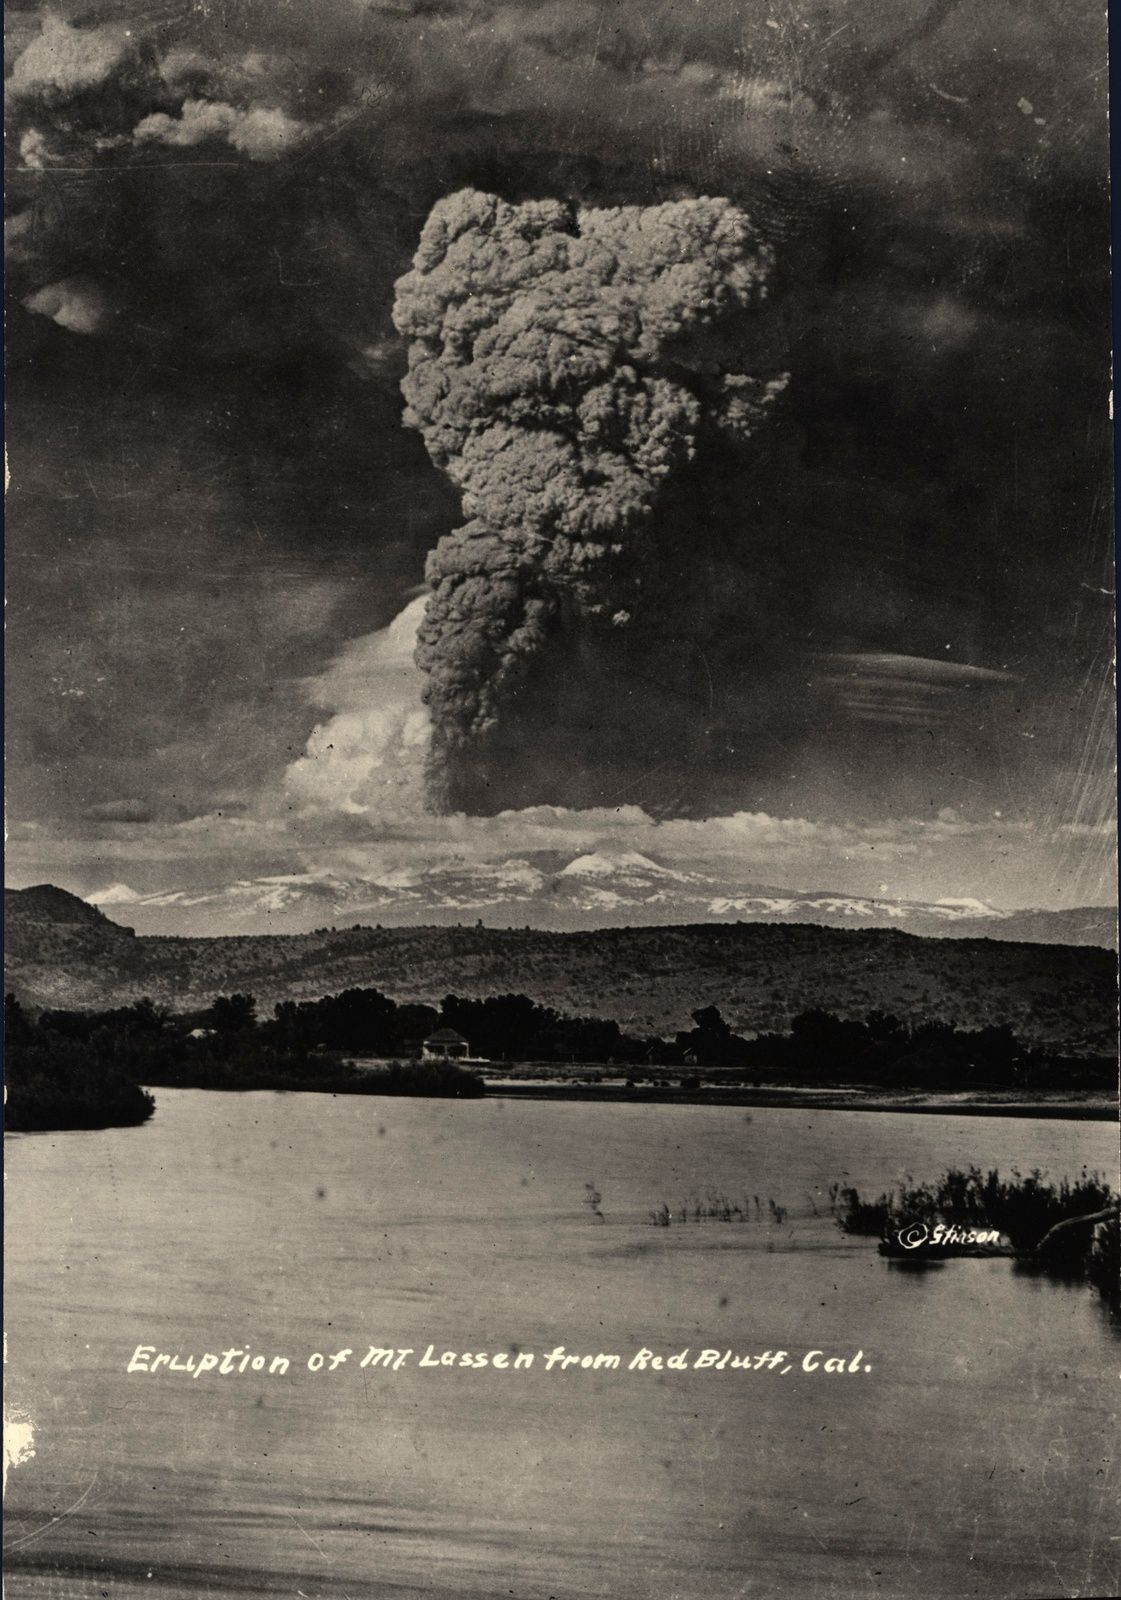 Lassen peak - the eruptive plume 05/22/1915 - photo RE Stinson - Archive VI-PH-C1.192 - Lassen NPS / Flickr